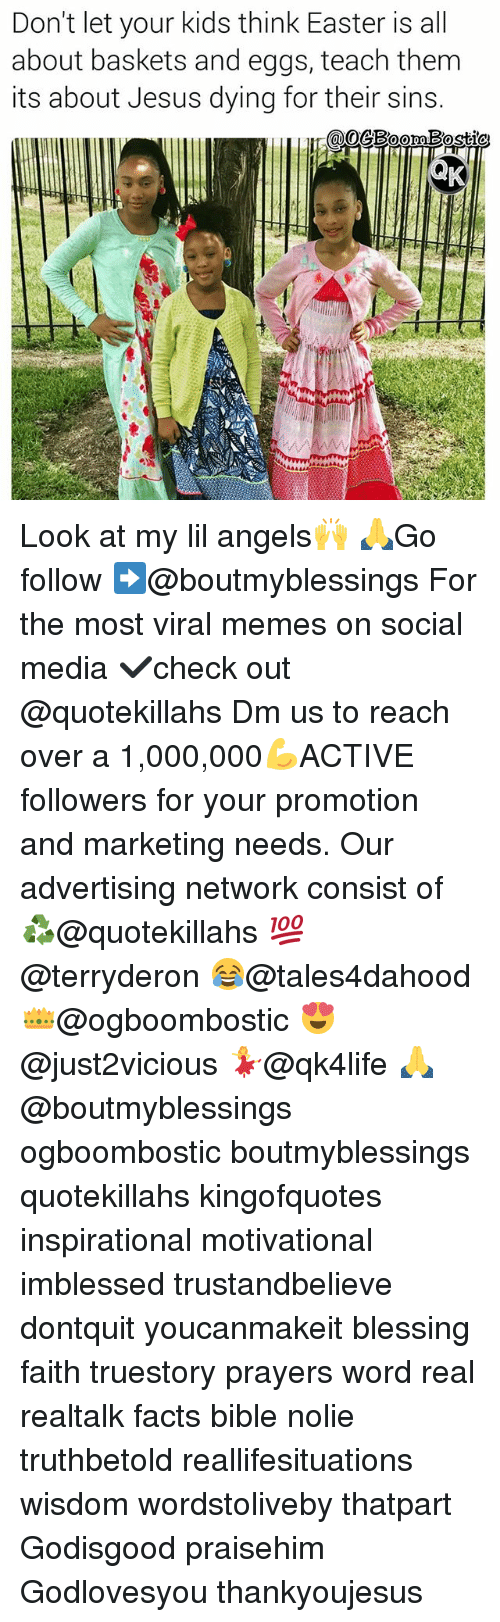 Easter, Facts, and Jesus: Don't let your kids think Easter is all  about baskets and eggs, teach them  its about Jesus dying for their sins Look at my lil angels🙌 🙏Go follow ➡@boutmyblessings For the most viral memes on social media ✔check out @quotekillahs Dm us to reach over a 1,000,000💪ACTIVE followers for your promotion and marketing needs. Our advertising network consist of ♻@quotekillahs 💯@terryderon 😂@tales4dahood 👑@ogboombostic 😍@just2vicious 💃@qk4life 🙏@boutmyblessings ogboombostic boutmyblessings quotekillahs kingofquotes inspirational motivational imblessed trustandbelieve dontquit youcanmakeit blessing faith truestory prayers word real realtalk facts bible nolie truthbetold reallifesituations wisdom wordstoliveby thatpart Godisgood praisehim Godlovesyou thankyoujesus